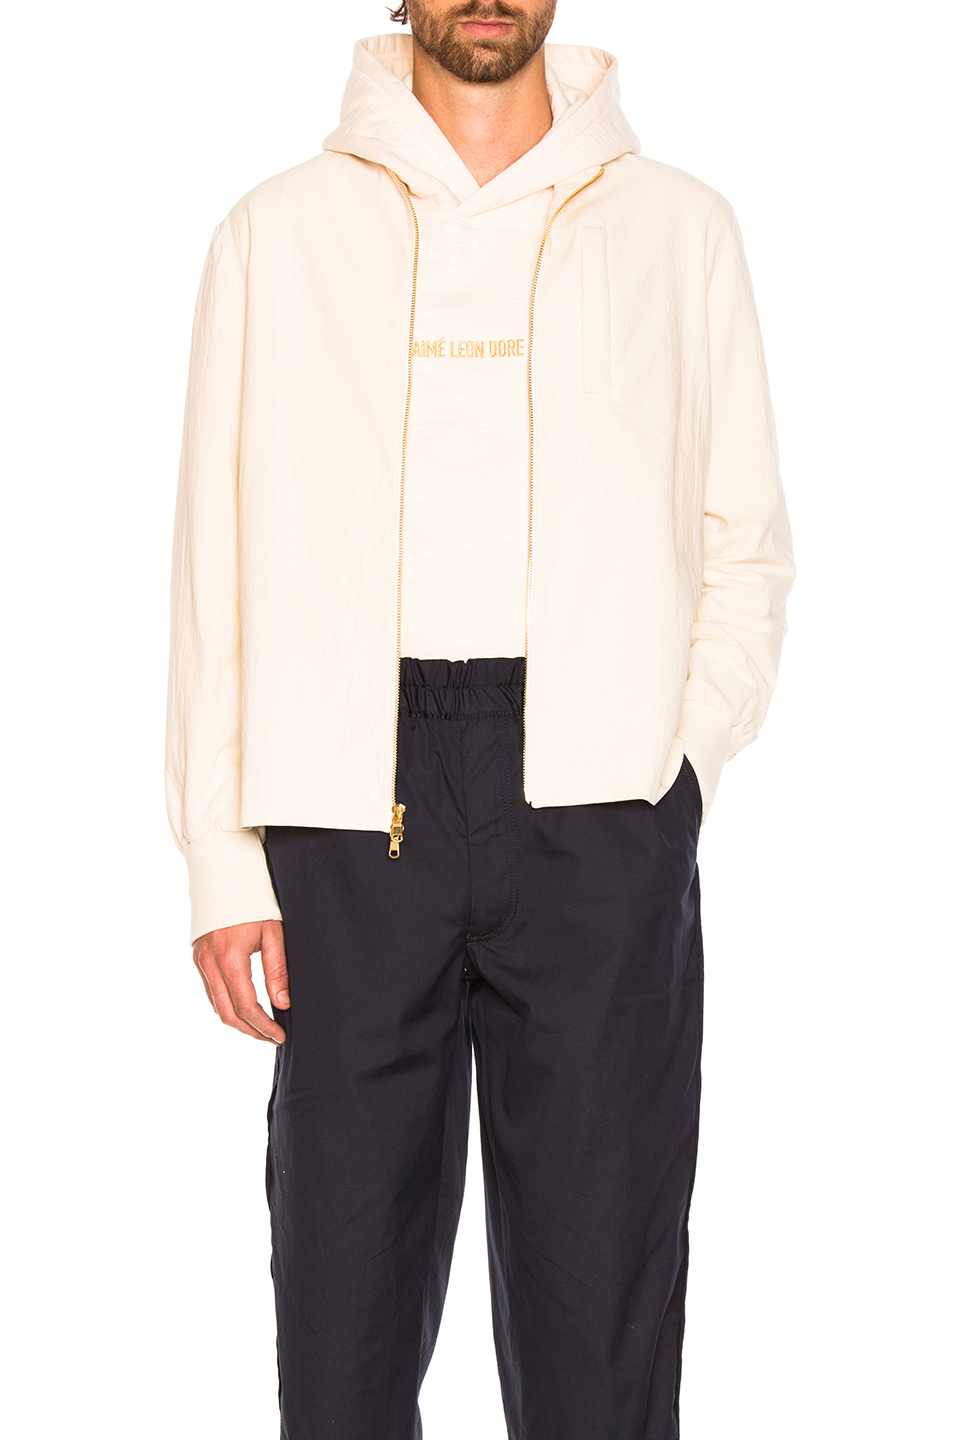 Aime Leon Dore Full Zip Shirt in White